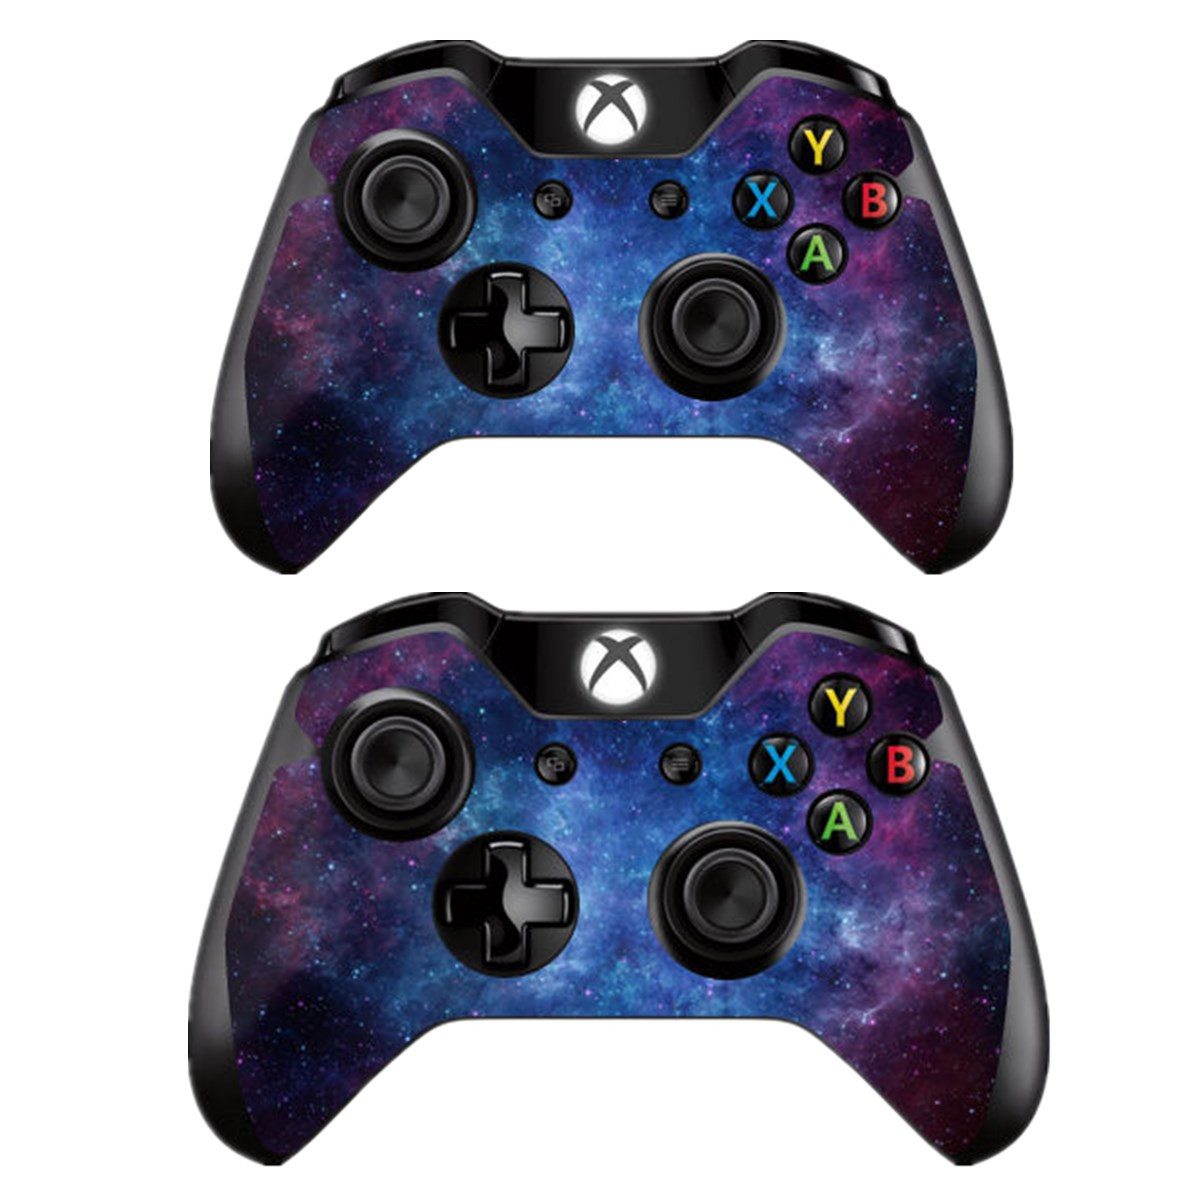 XB1 SKINOWN Xbox 1 Cosmic Nebular Skin Sticker Vinly Decal Cover for Xbox One Console and 2 Controller with 1 Kinect Skins